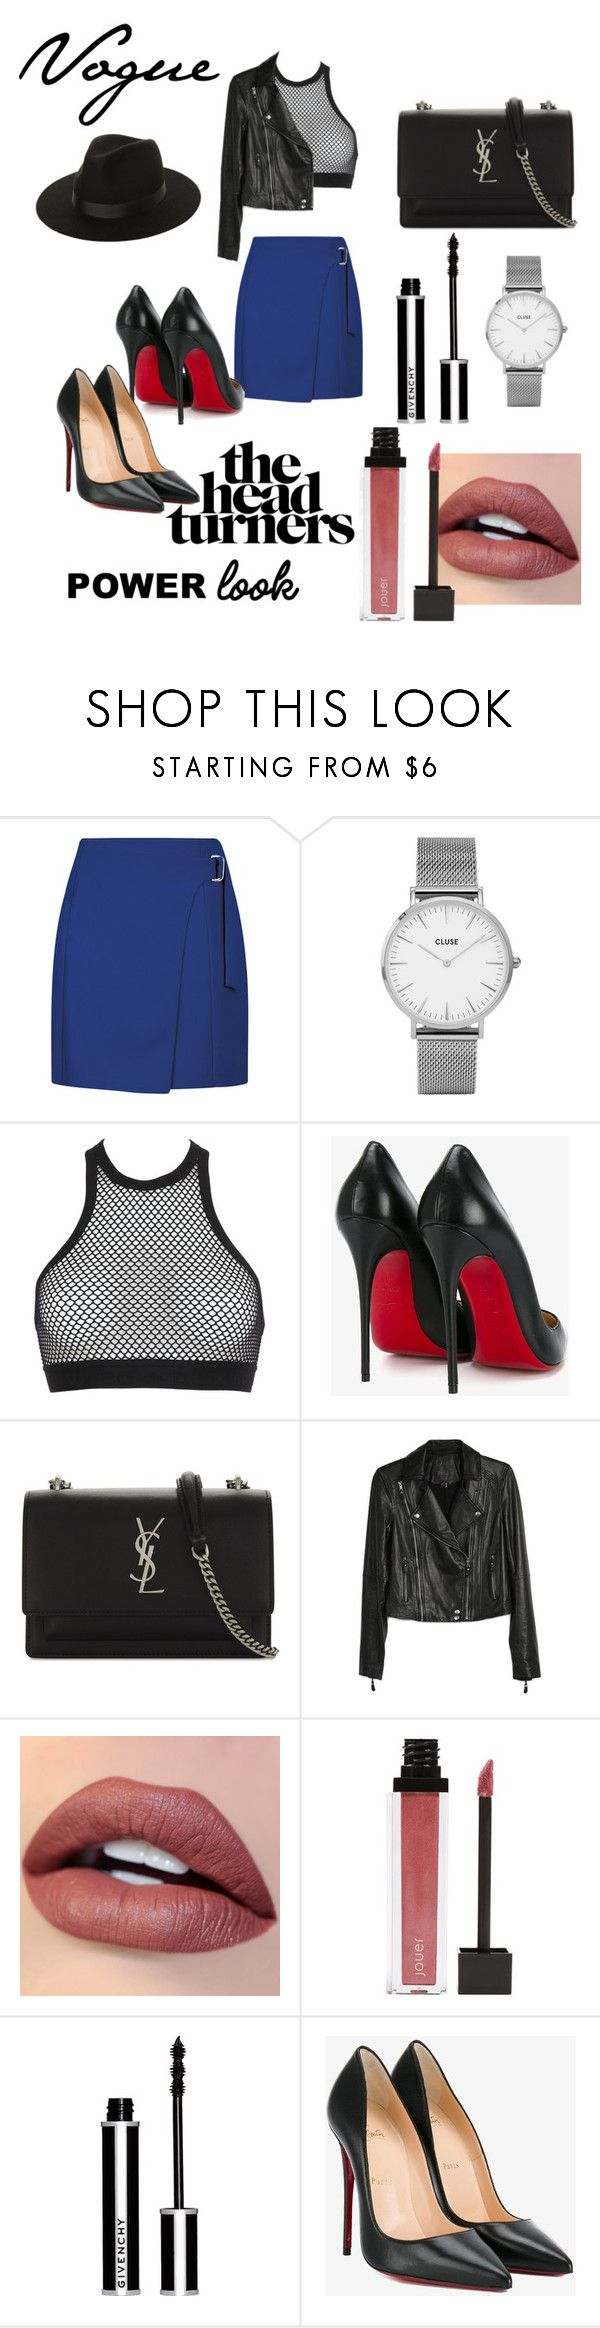 """""""My Power Look"""" by anamariahodinet on Polyvore featuring CLUSE, Dsquared2, Christian Louboutin, Yves Saint Laurent, Paige Denim, Jouer, Givenchy, Lack of Color, polyvorecontest and powerlook"""